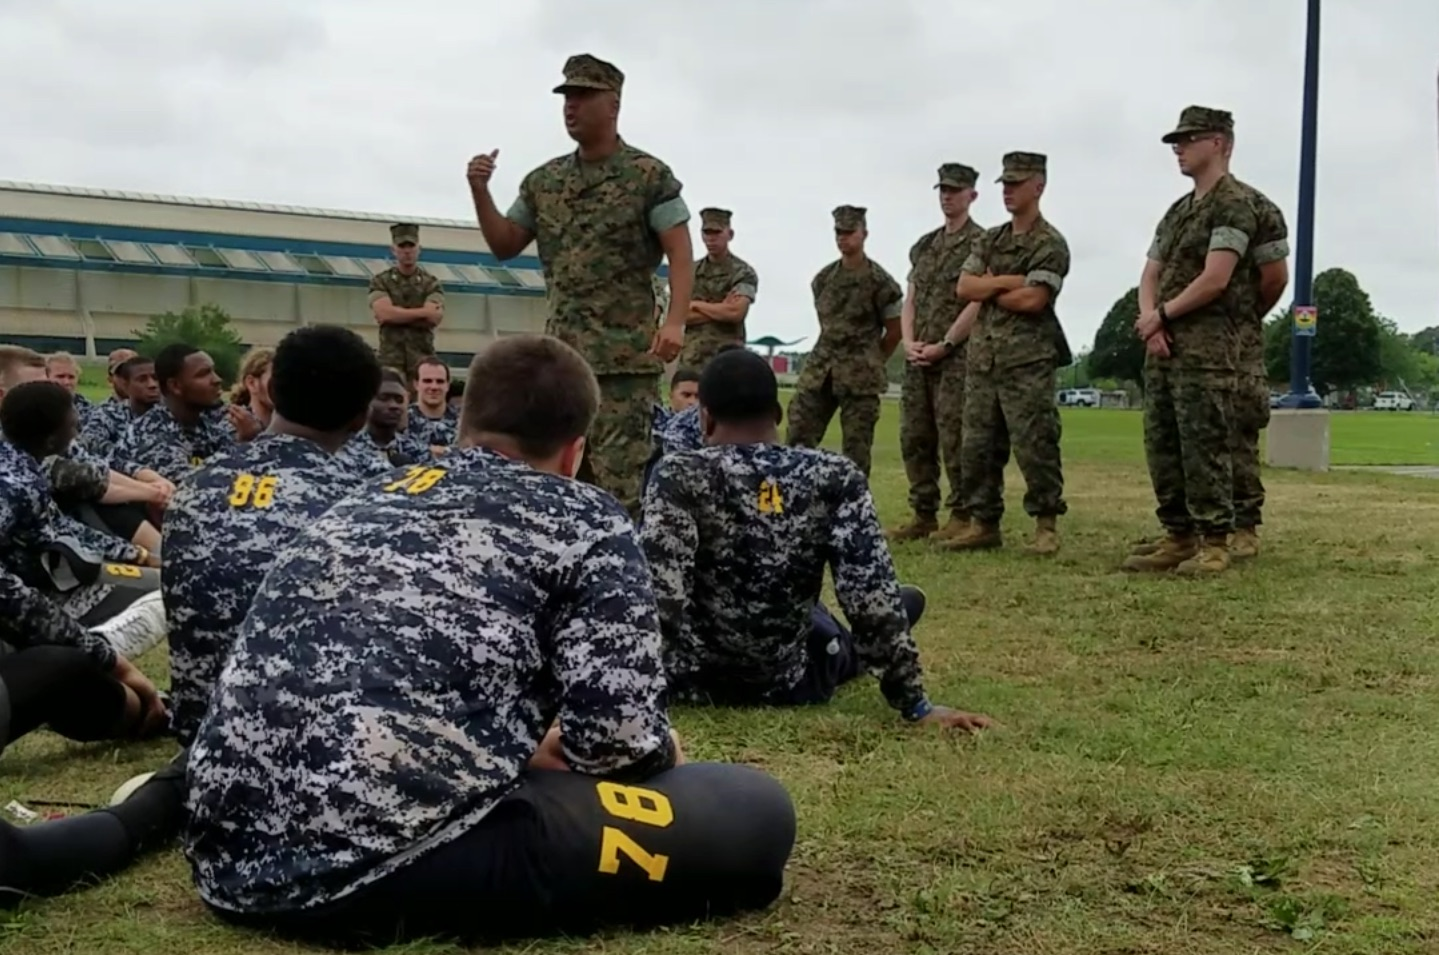 Mcrc photos - Becoming a marine officer ...